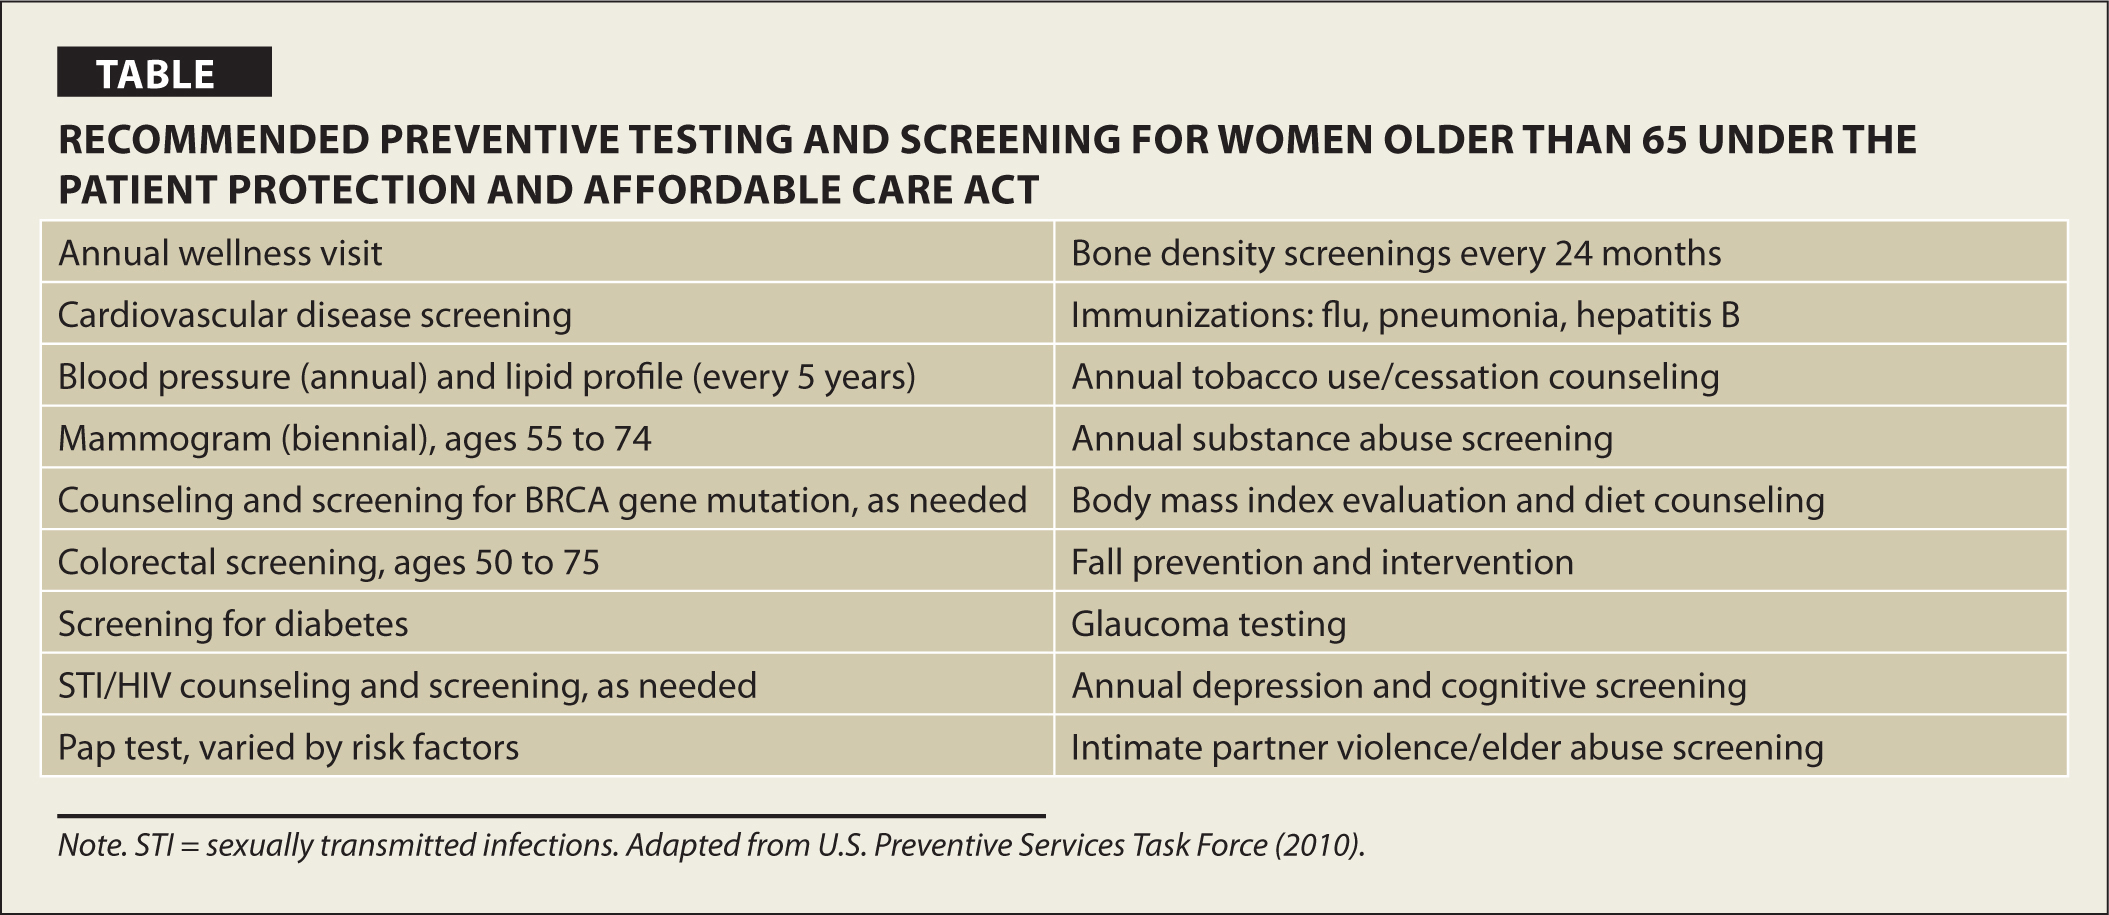 Recommended Preventive Testing and Screening for Women Older than 65 Under the Patient Protection and Affordable Care ACT